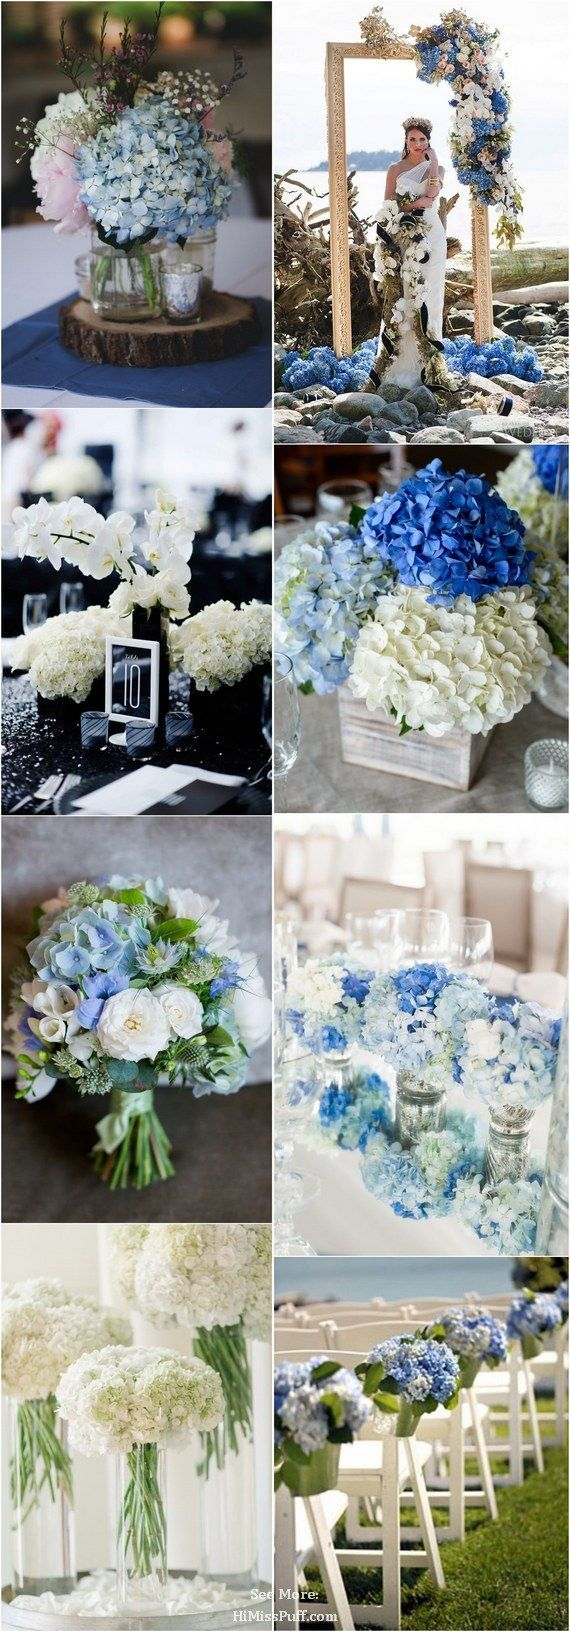 Arches & Aisles 100 Beautiful Hydrangeas Wedding Ideas / http://www.himisspuff.com/beautiful-hydrangeas-wedding-ideas/